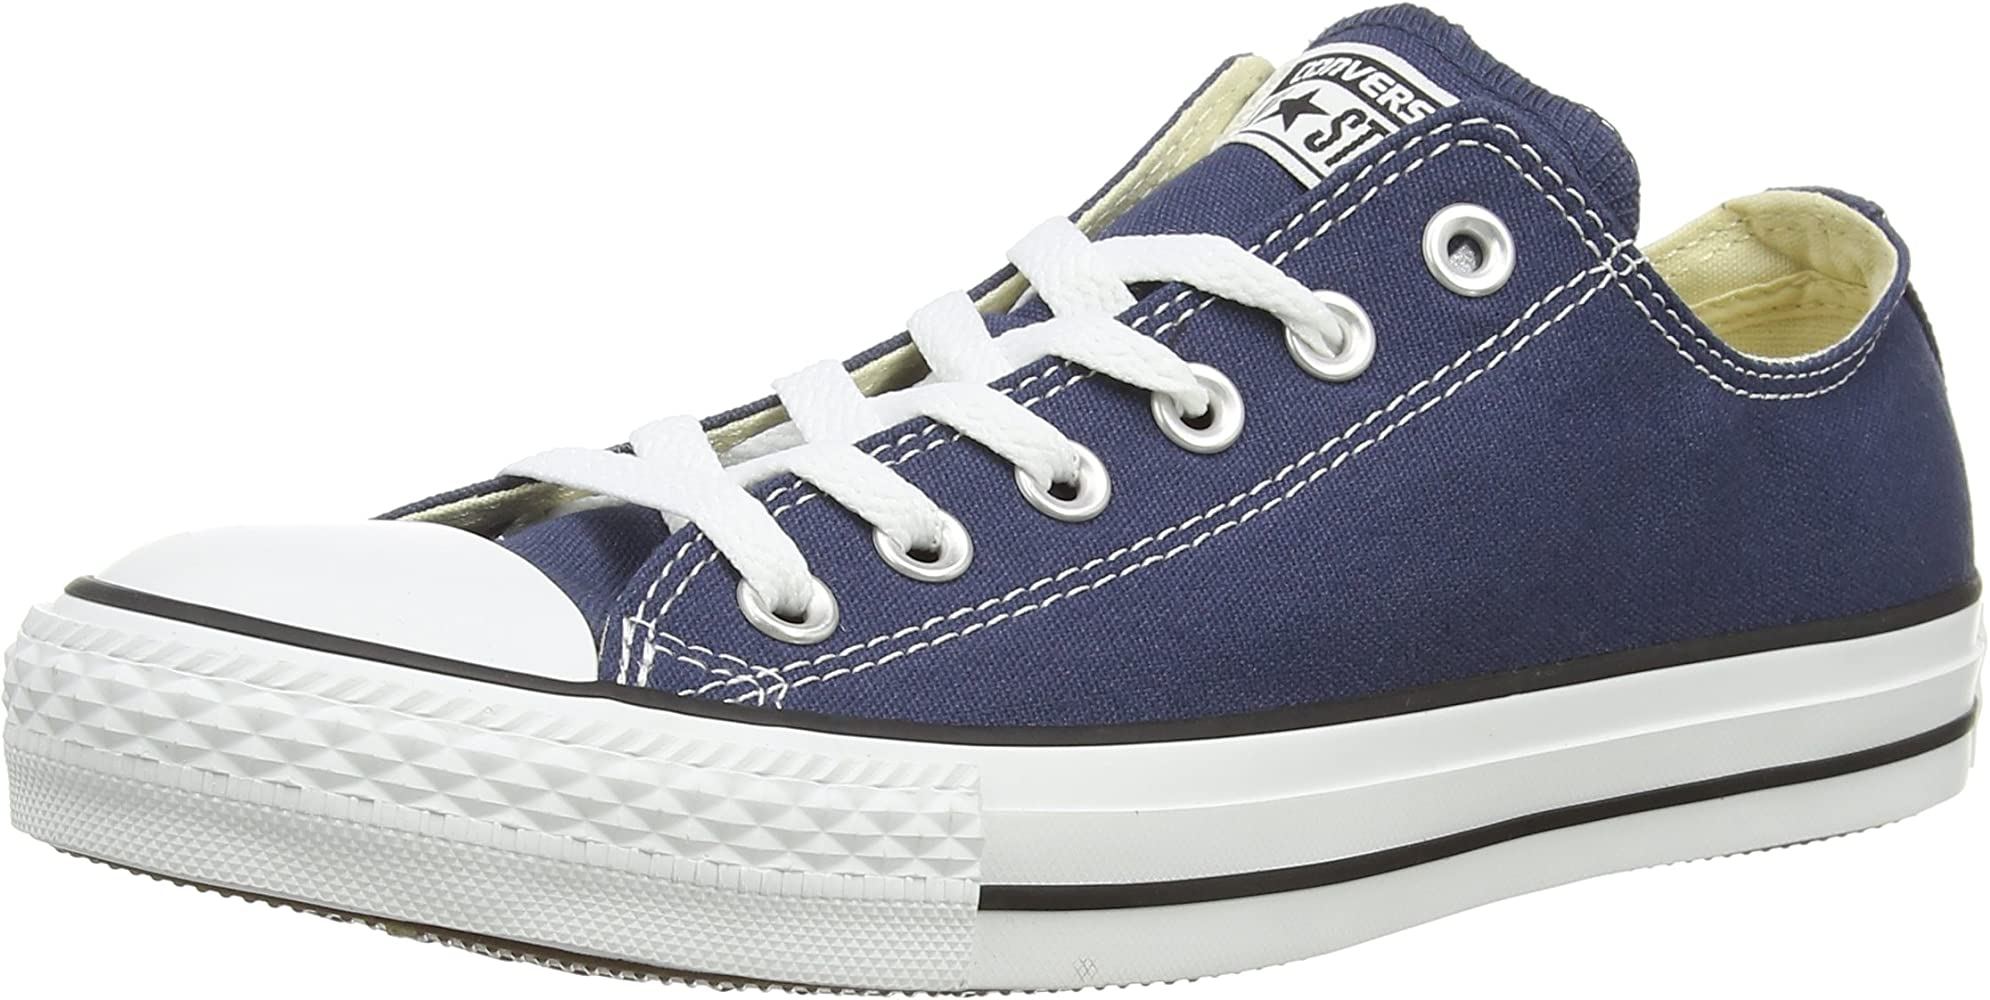 Classic Chuck Taylor All Star Low OX Tops Men Women Canvas Trainer